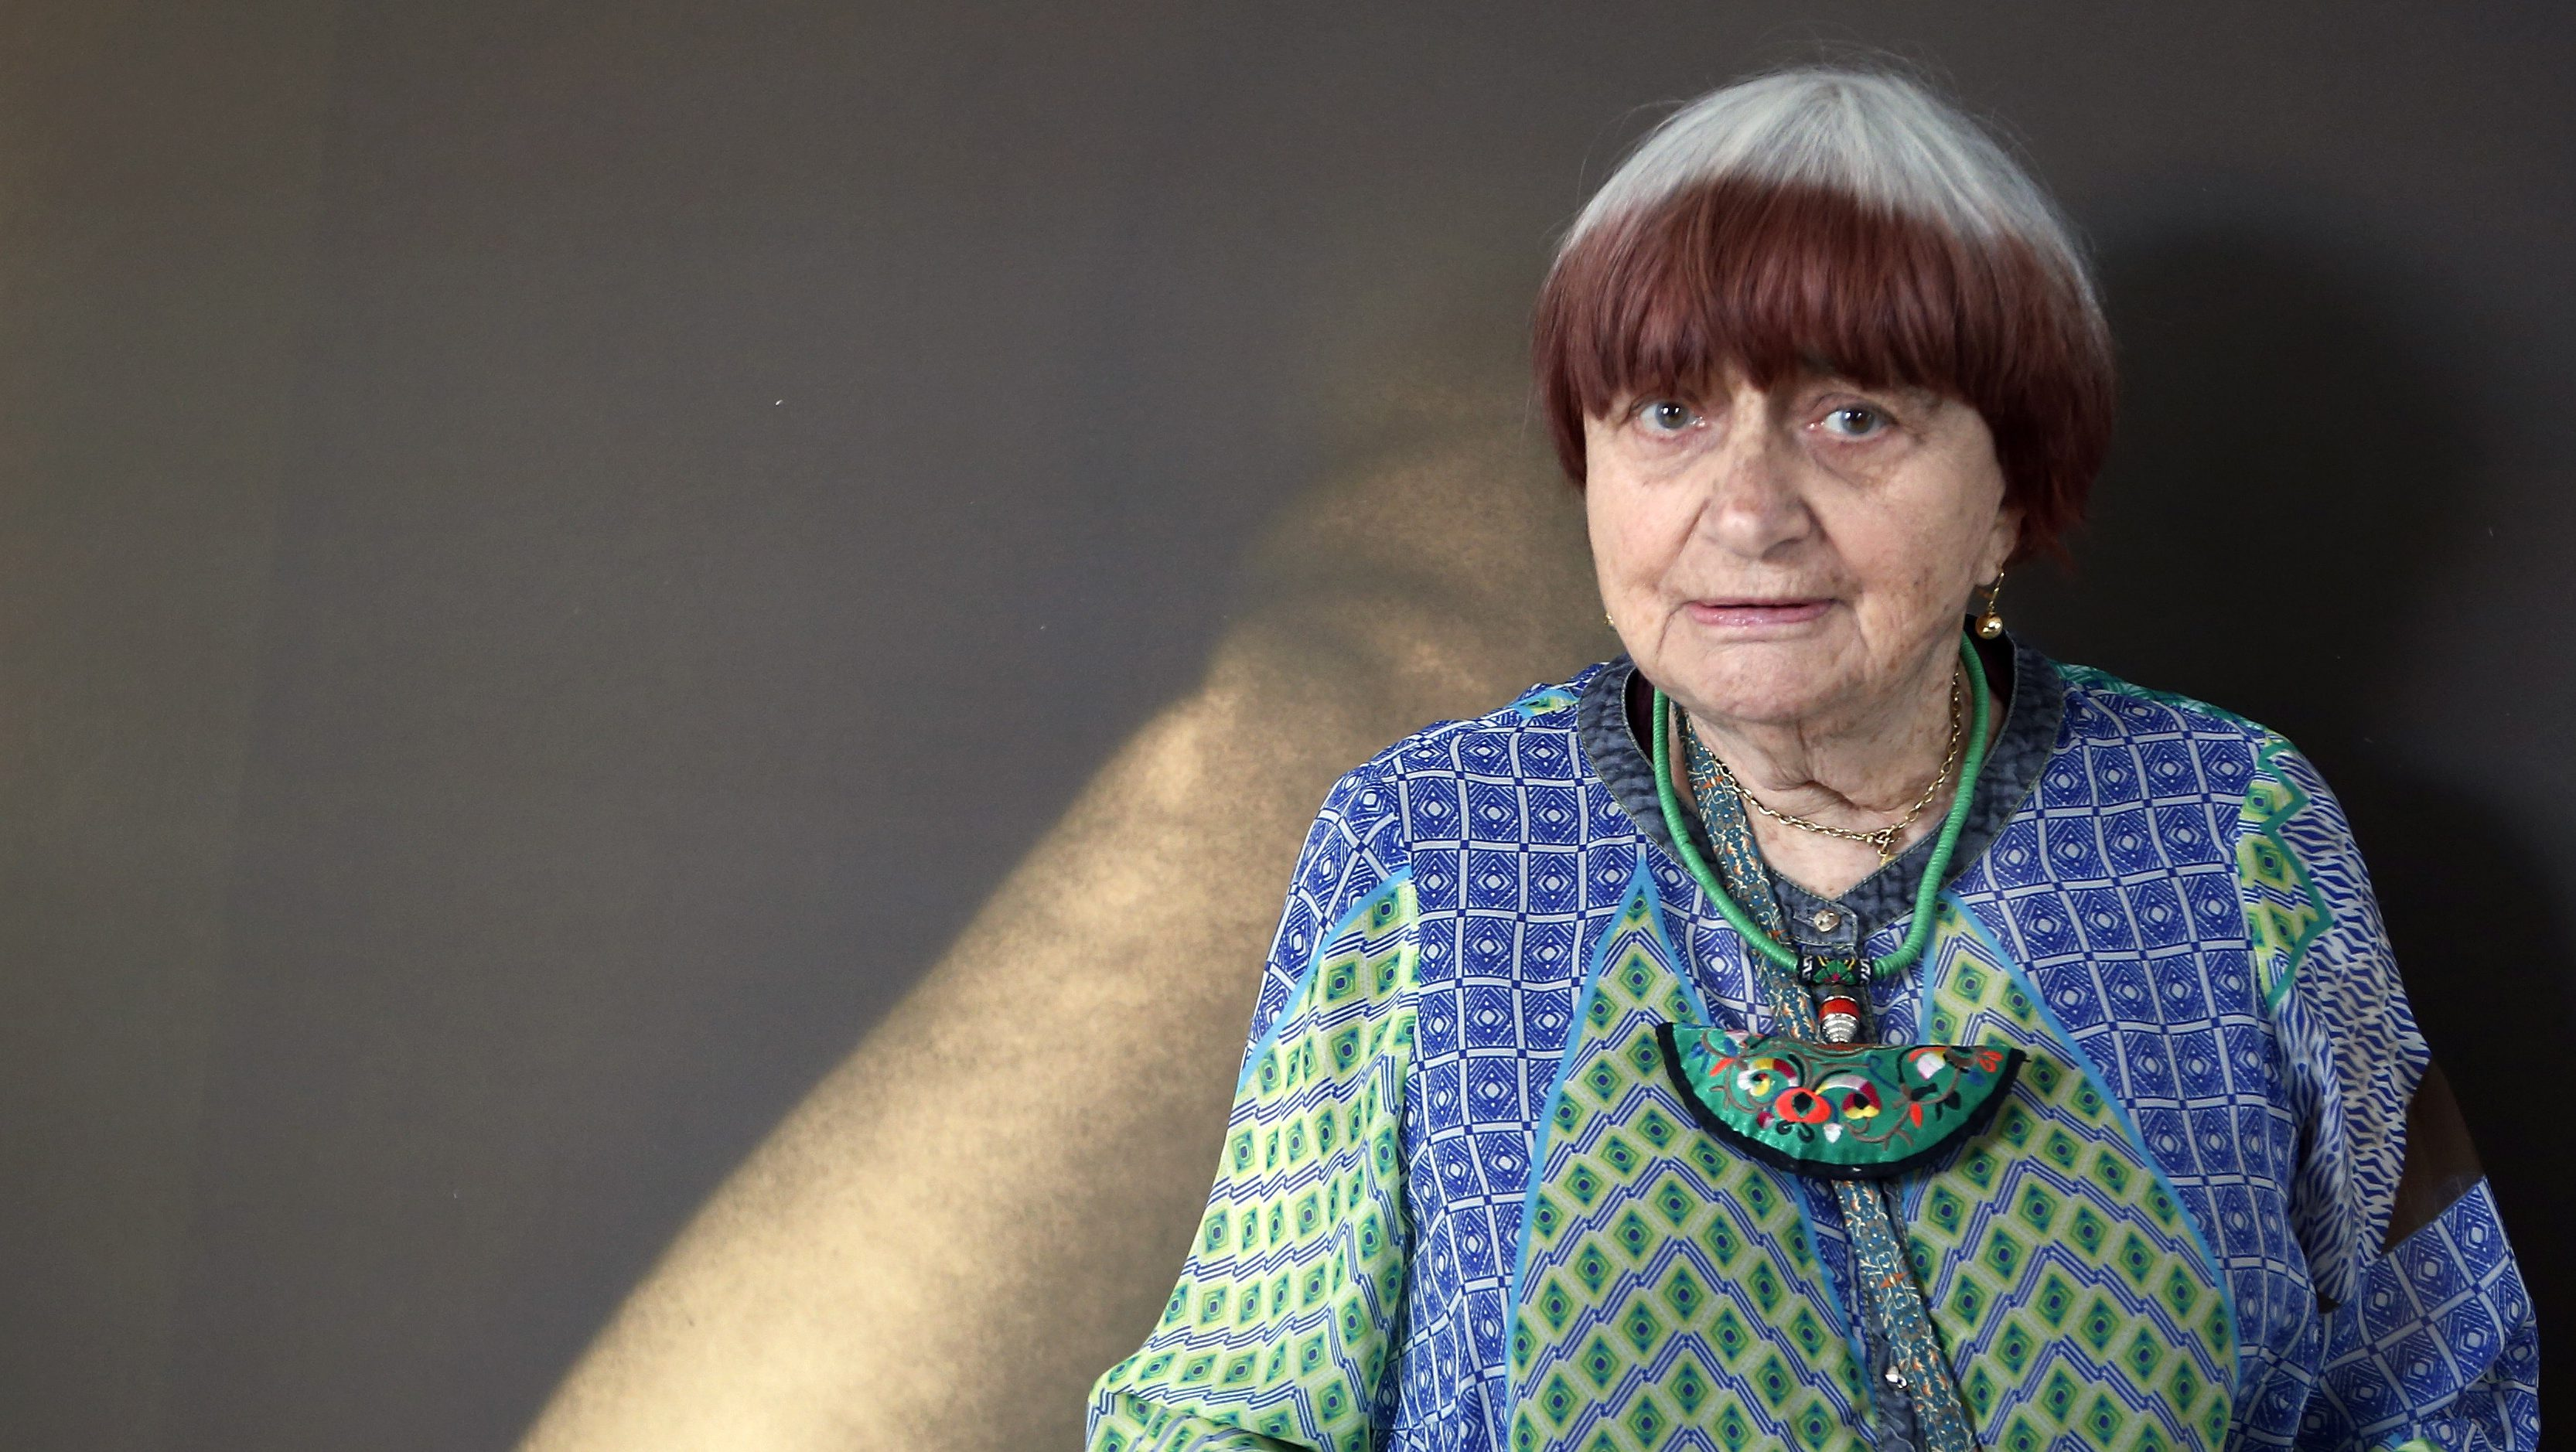 """Film director Agnes Varda poses ahead of a debate """"Kering Women in Motion"""" at the 68th Cannes Film Festival in Cannes, southern France, May 23, 2015. Filmmaker Agnes Varda will receive an honorary Palme d'Or at the Cannes Festival's closing ceremony on May 24.         REUTERS/Eric Gaillard  - RTX1E7HZ"""